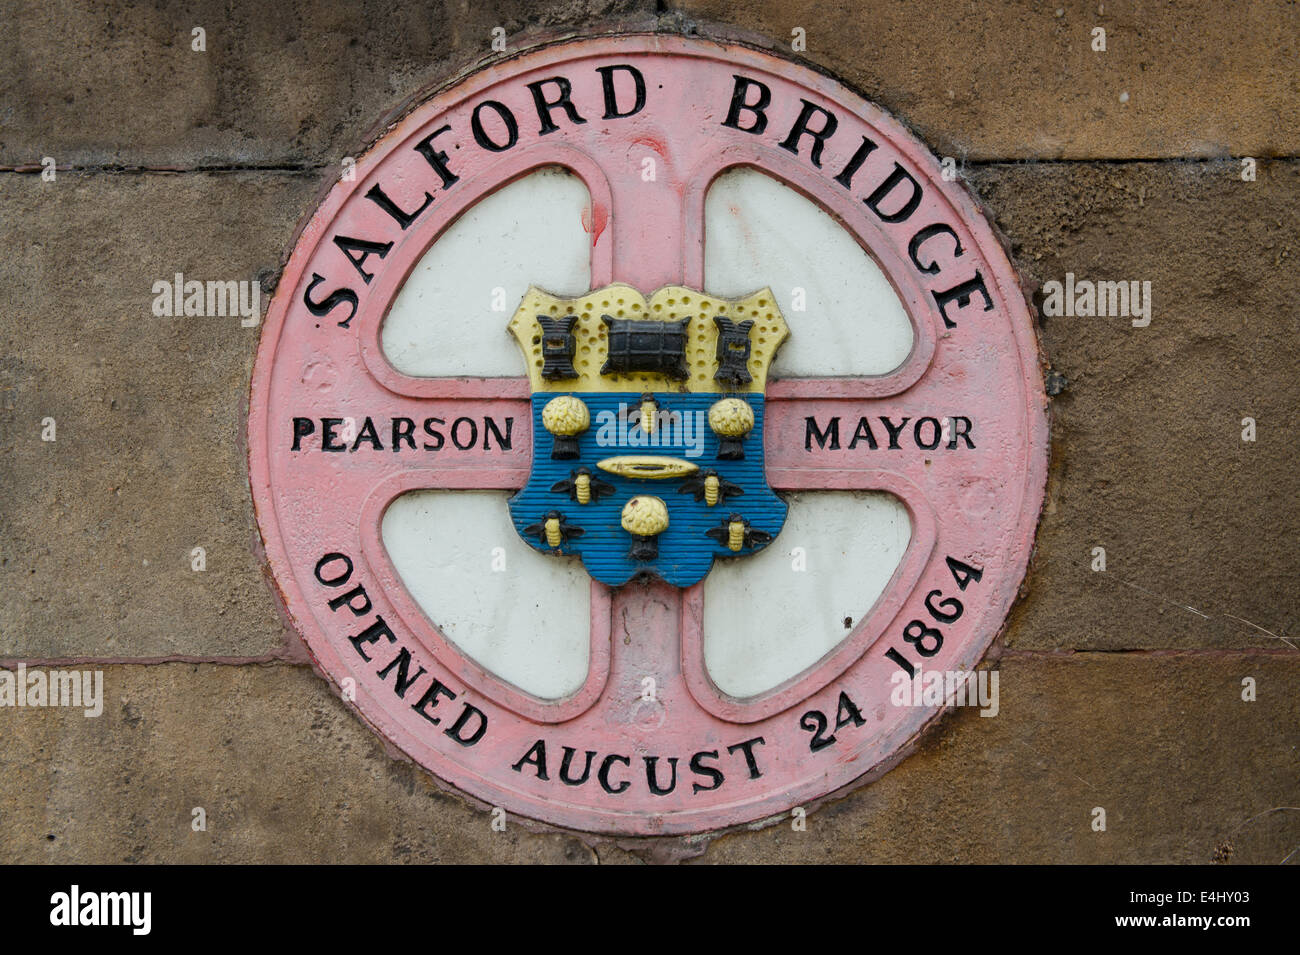 Plaque marking construction of Salford /Palatine Bridge / Cathedral Approach passing over River Irwell / Manchester - Stock Image